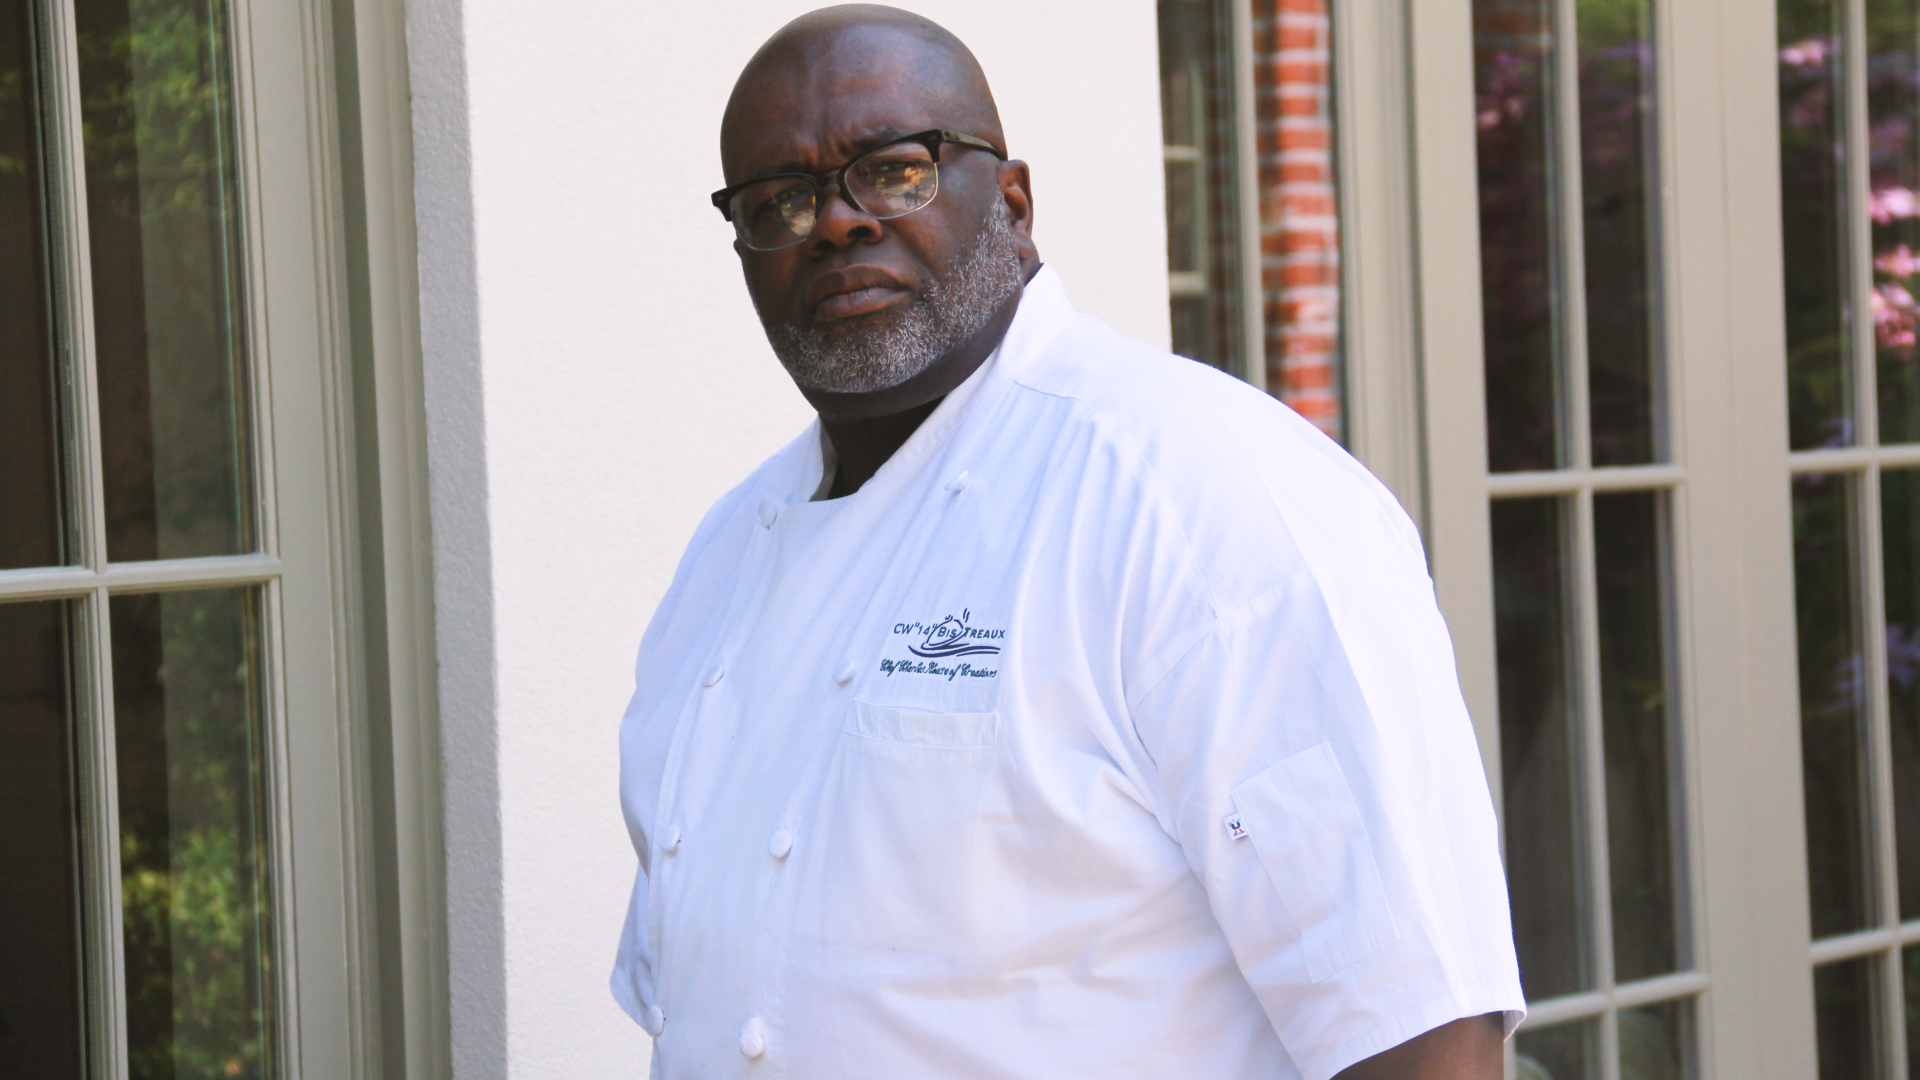 Chefcharles.png